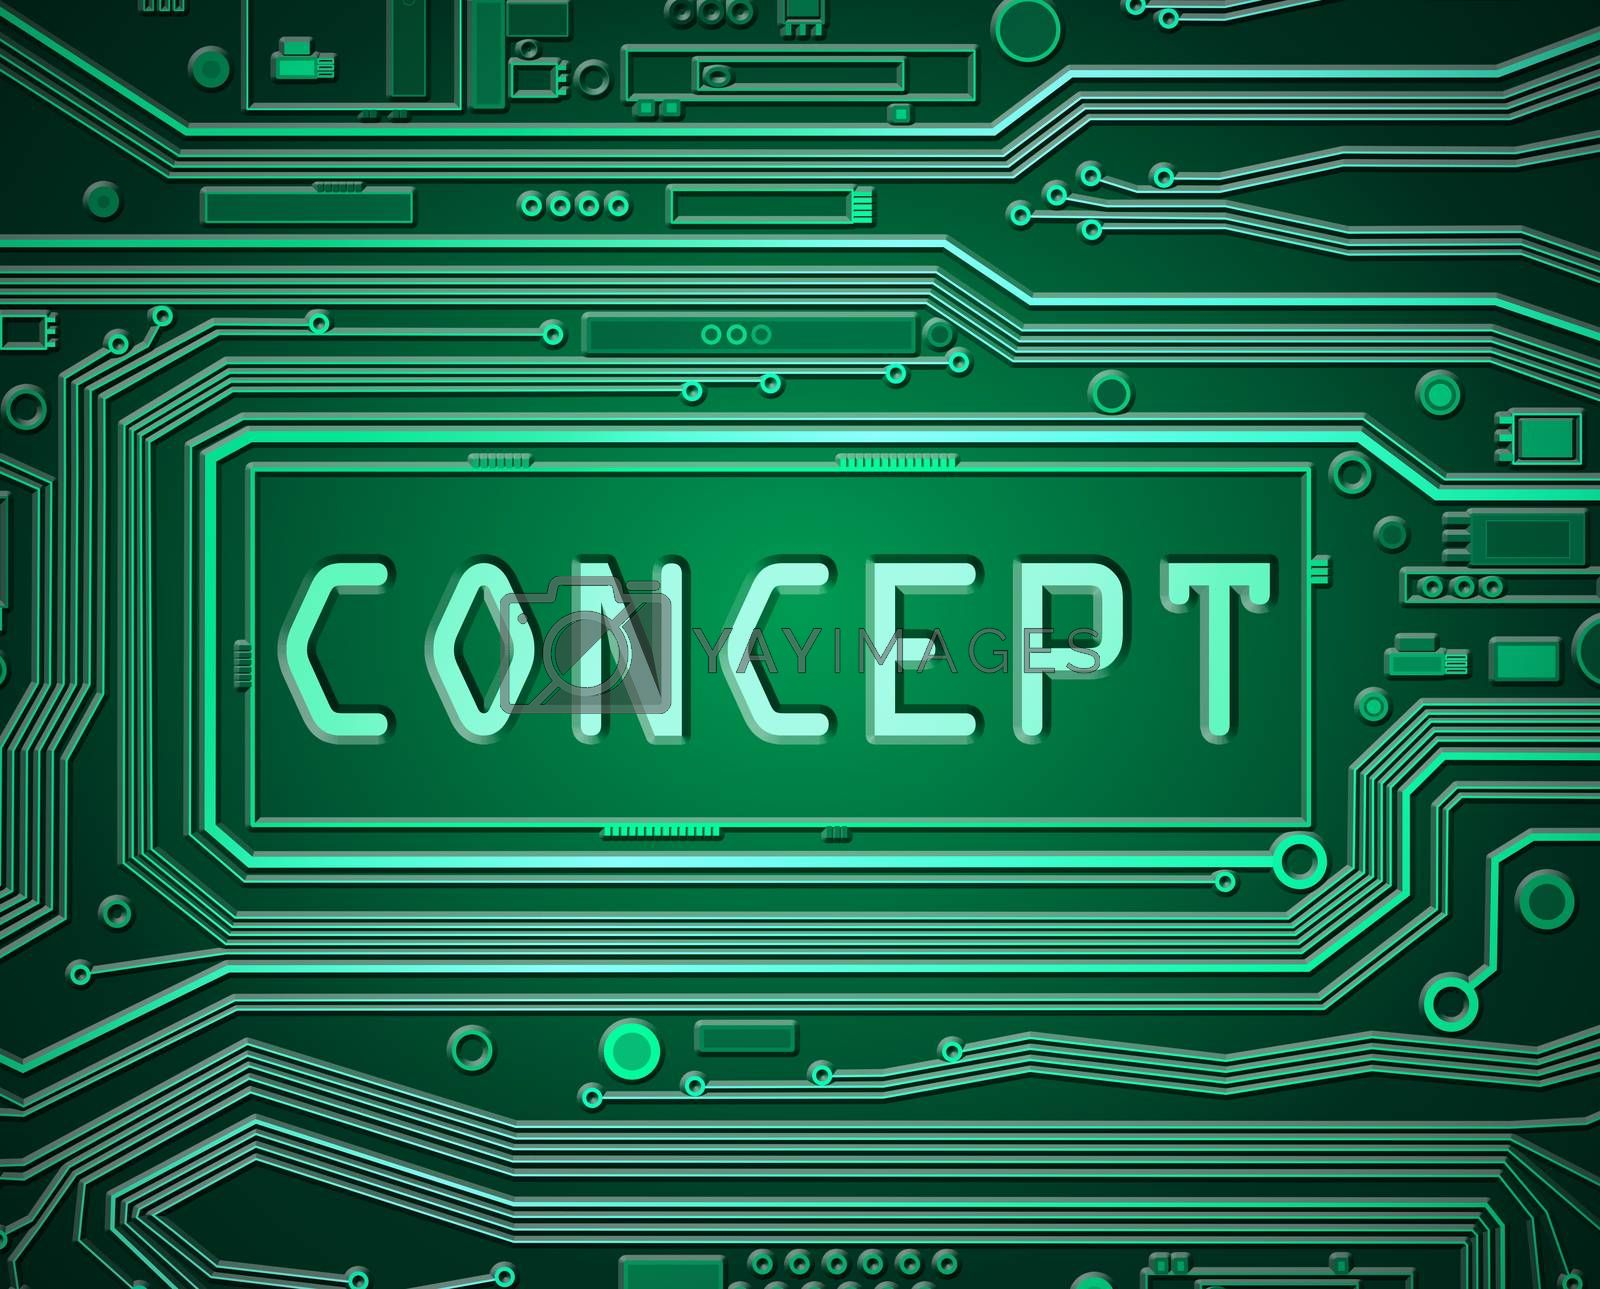 Abstract style illustration depicting printed circuit board components with the word concept.